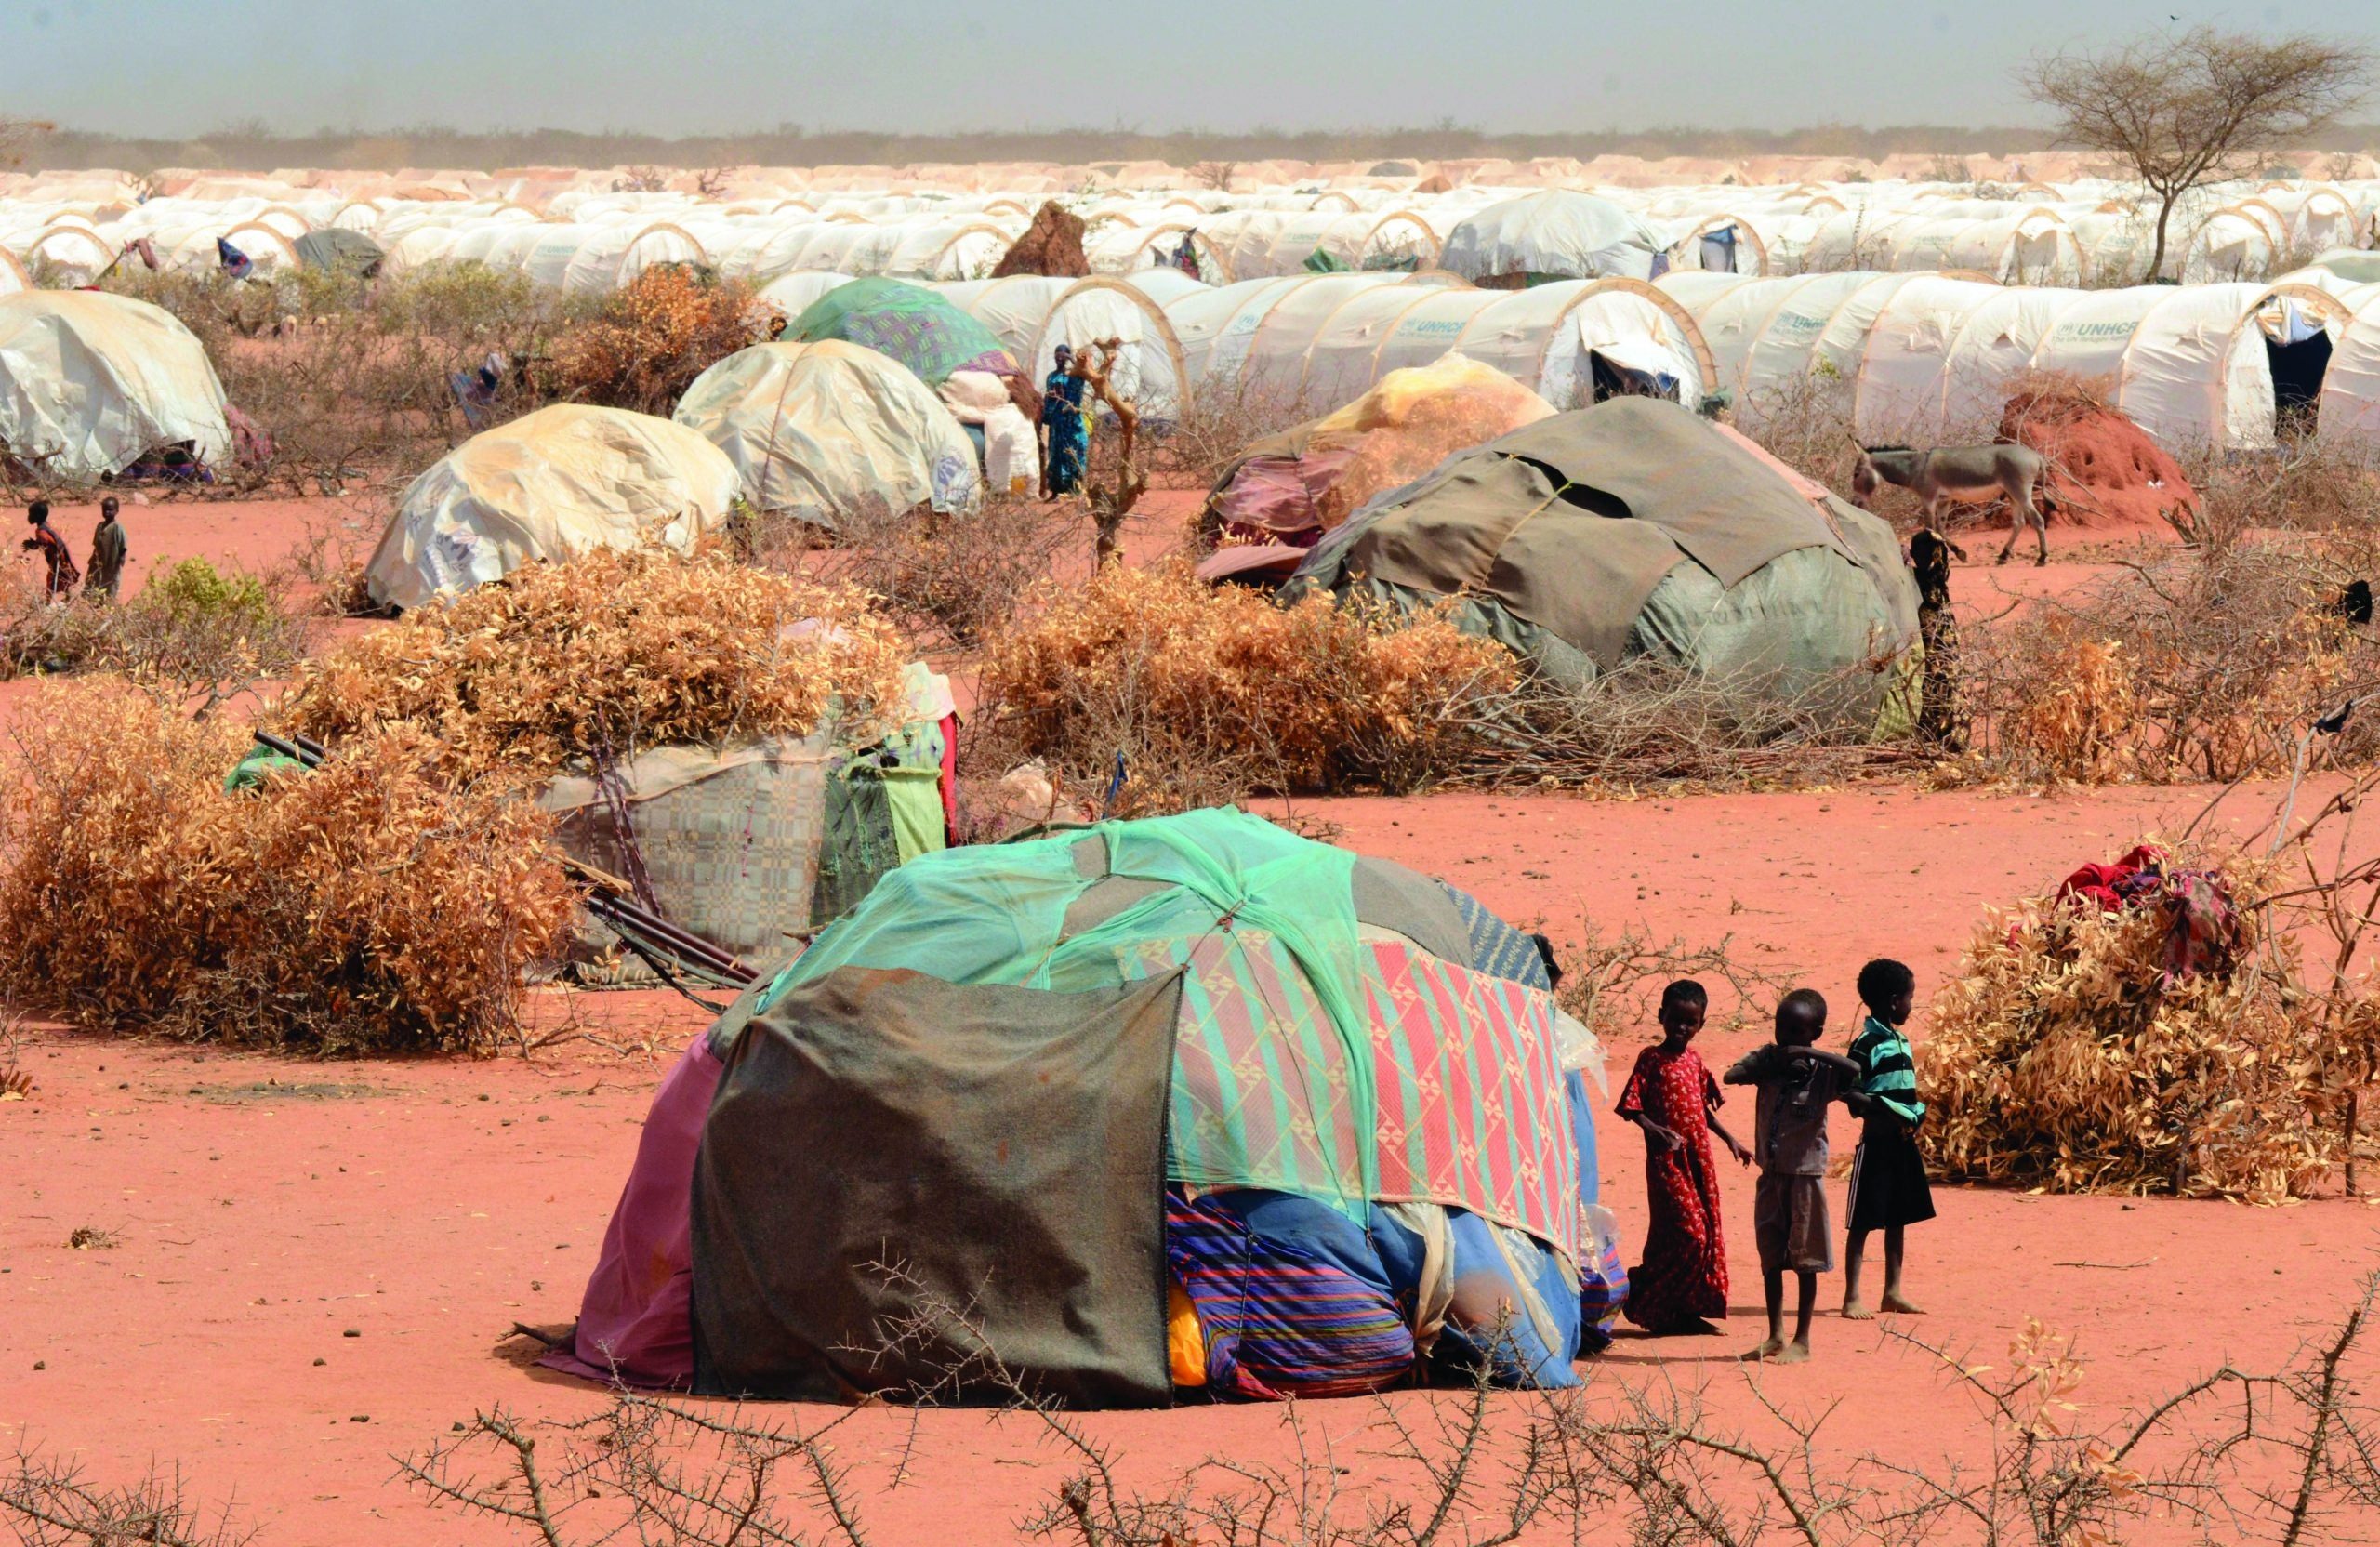 City of Thorns takes us inside the world's largest refugee camp